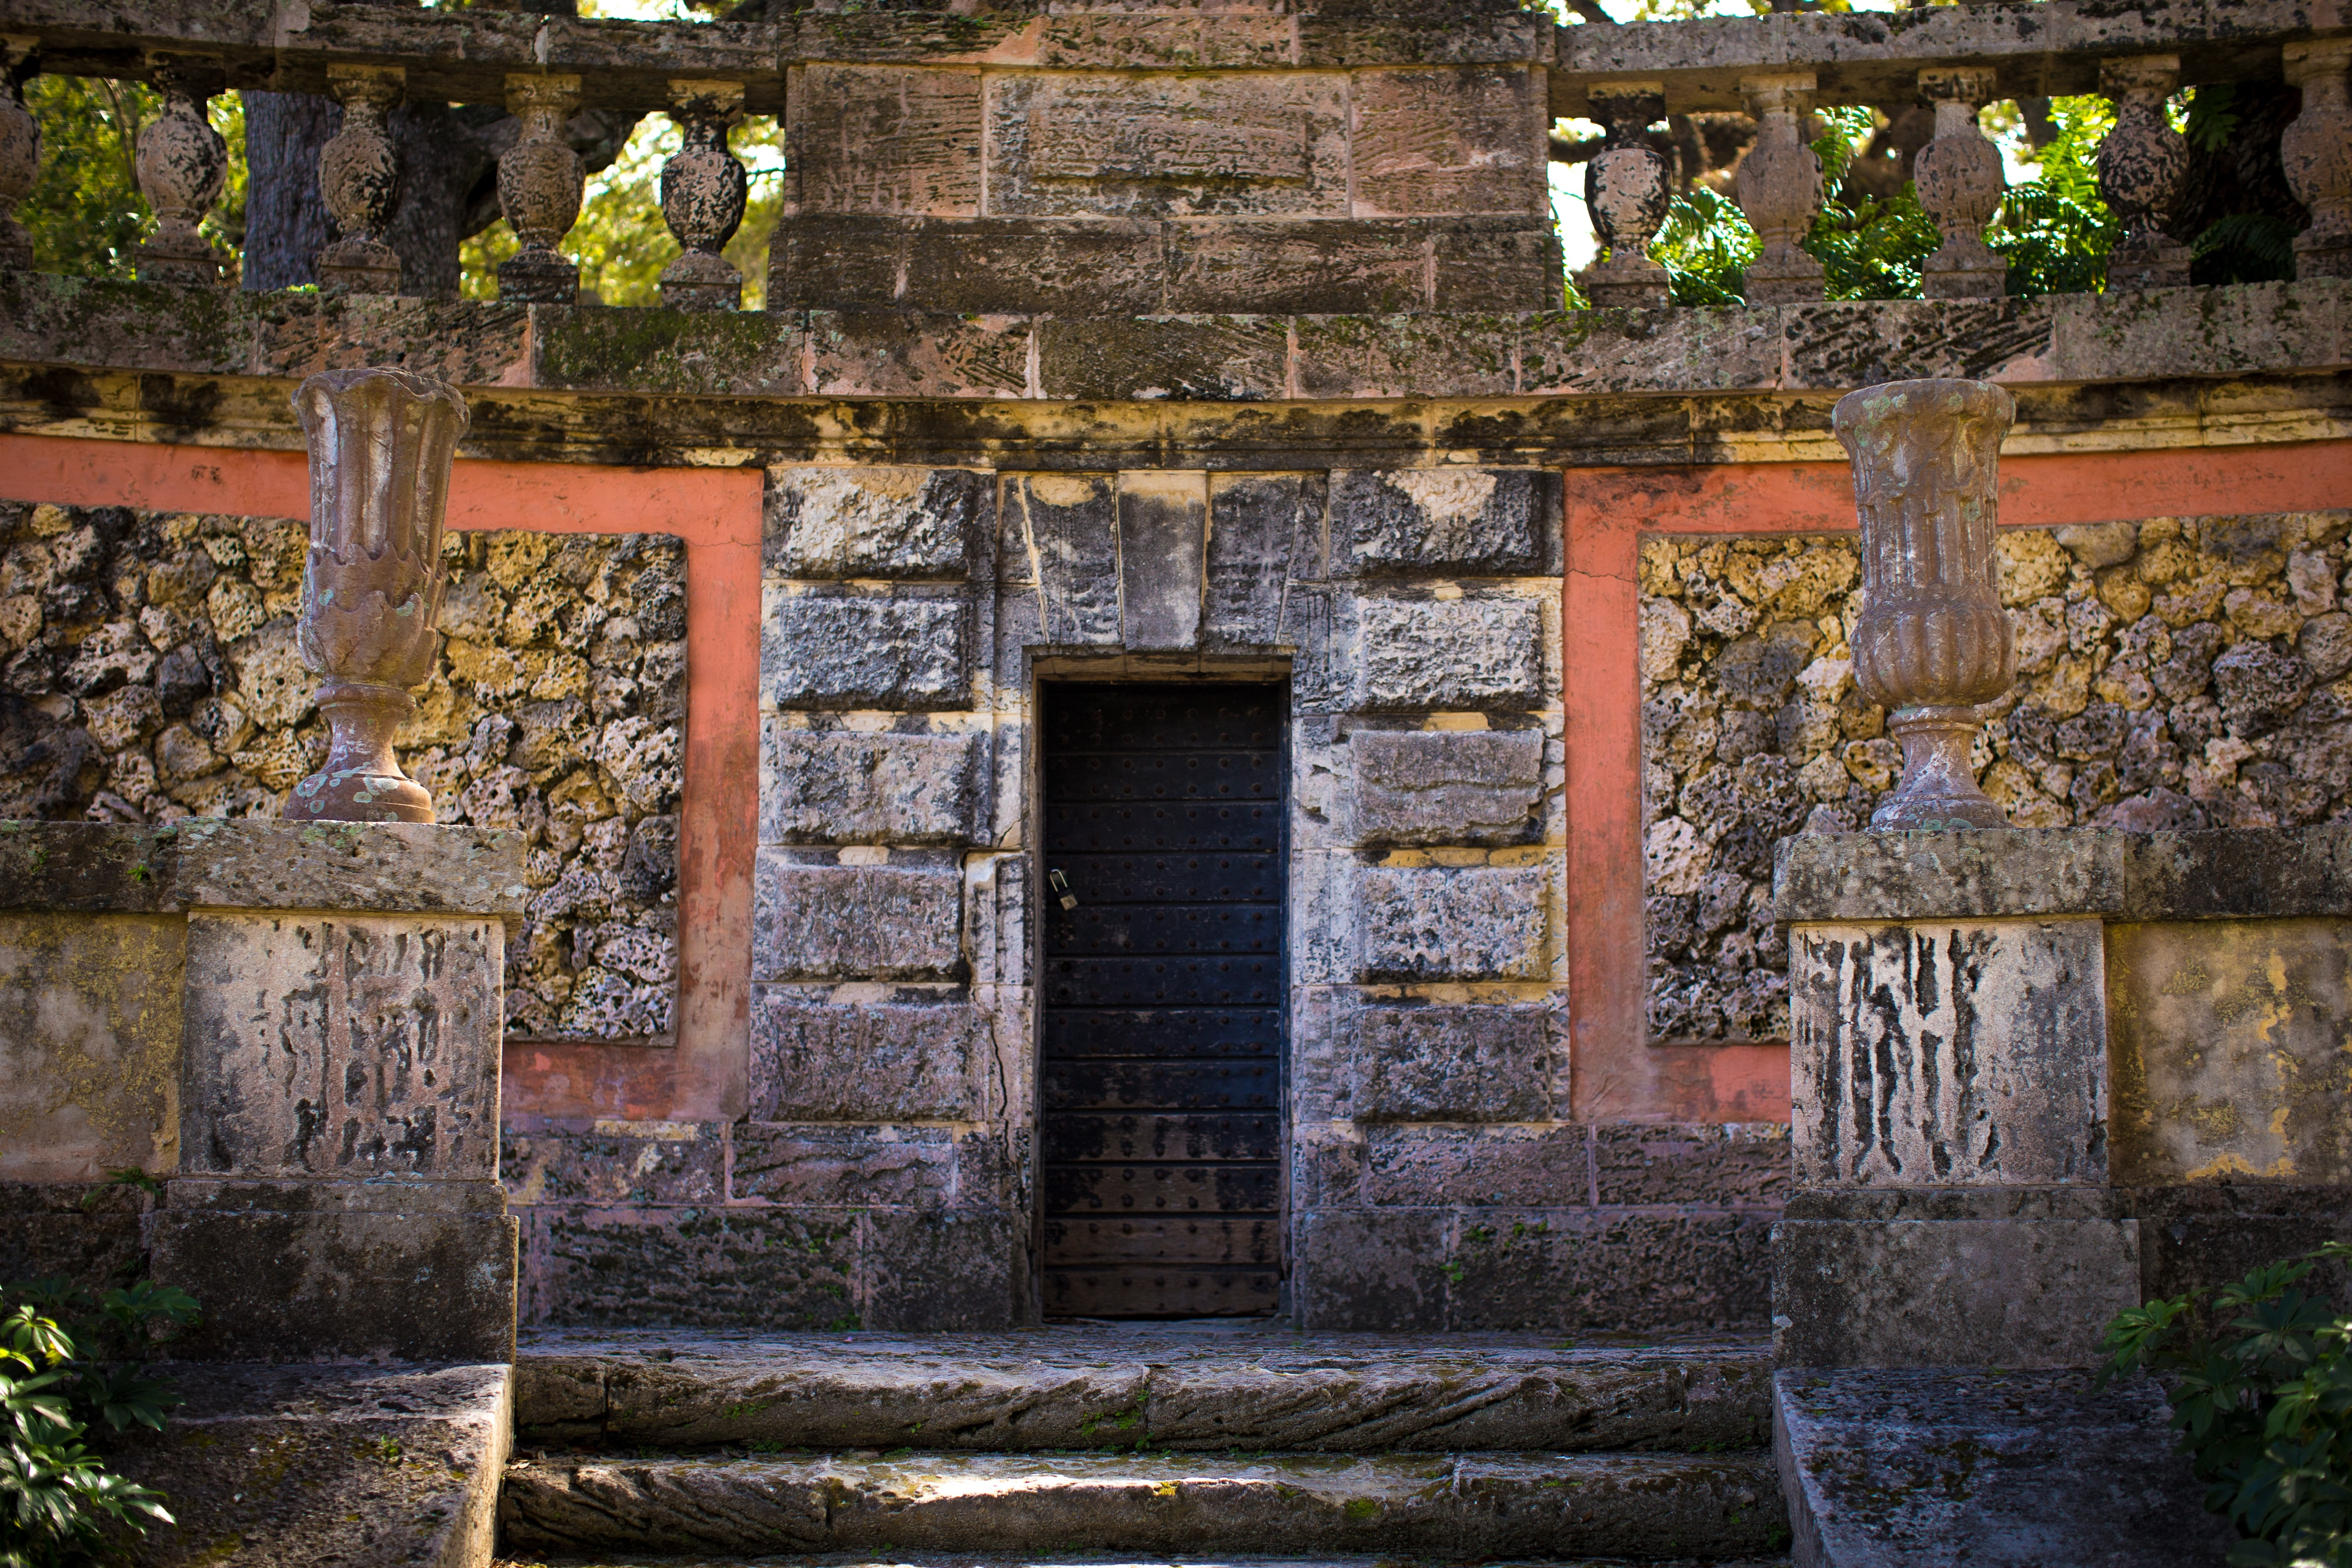 A locked door of an old block temple with steps beneath it.